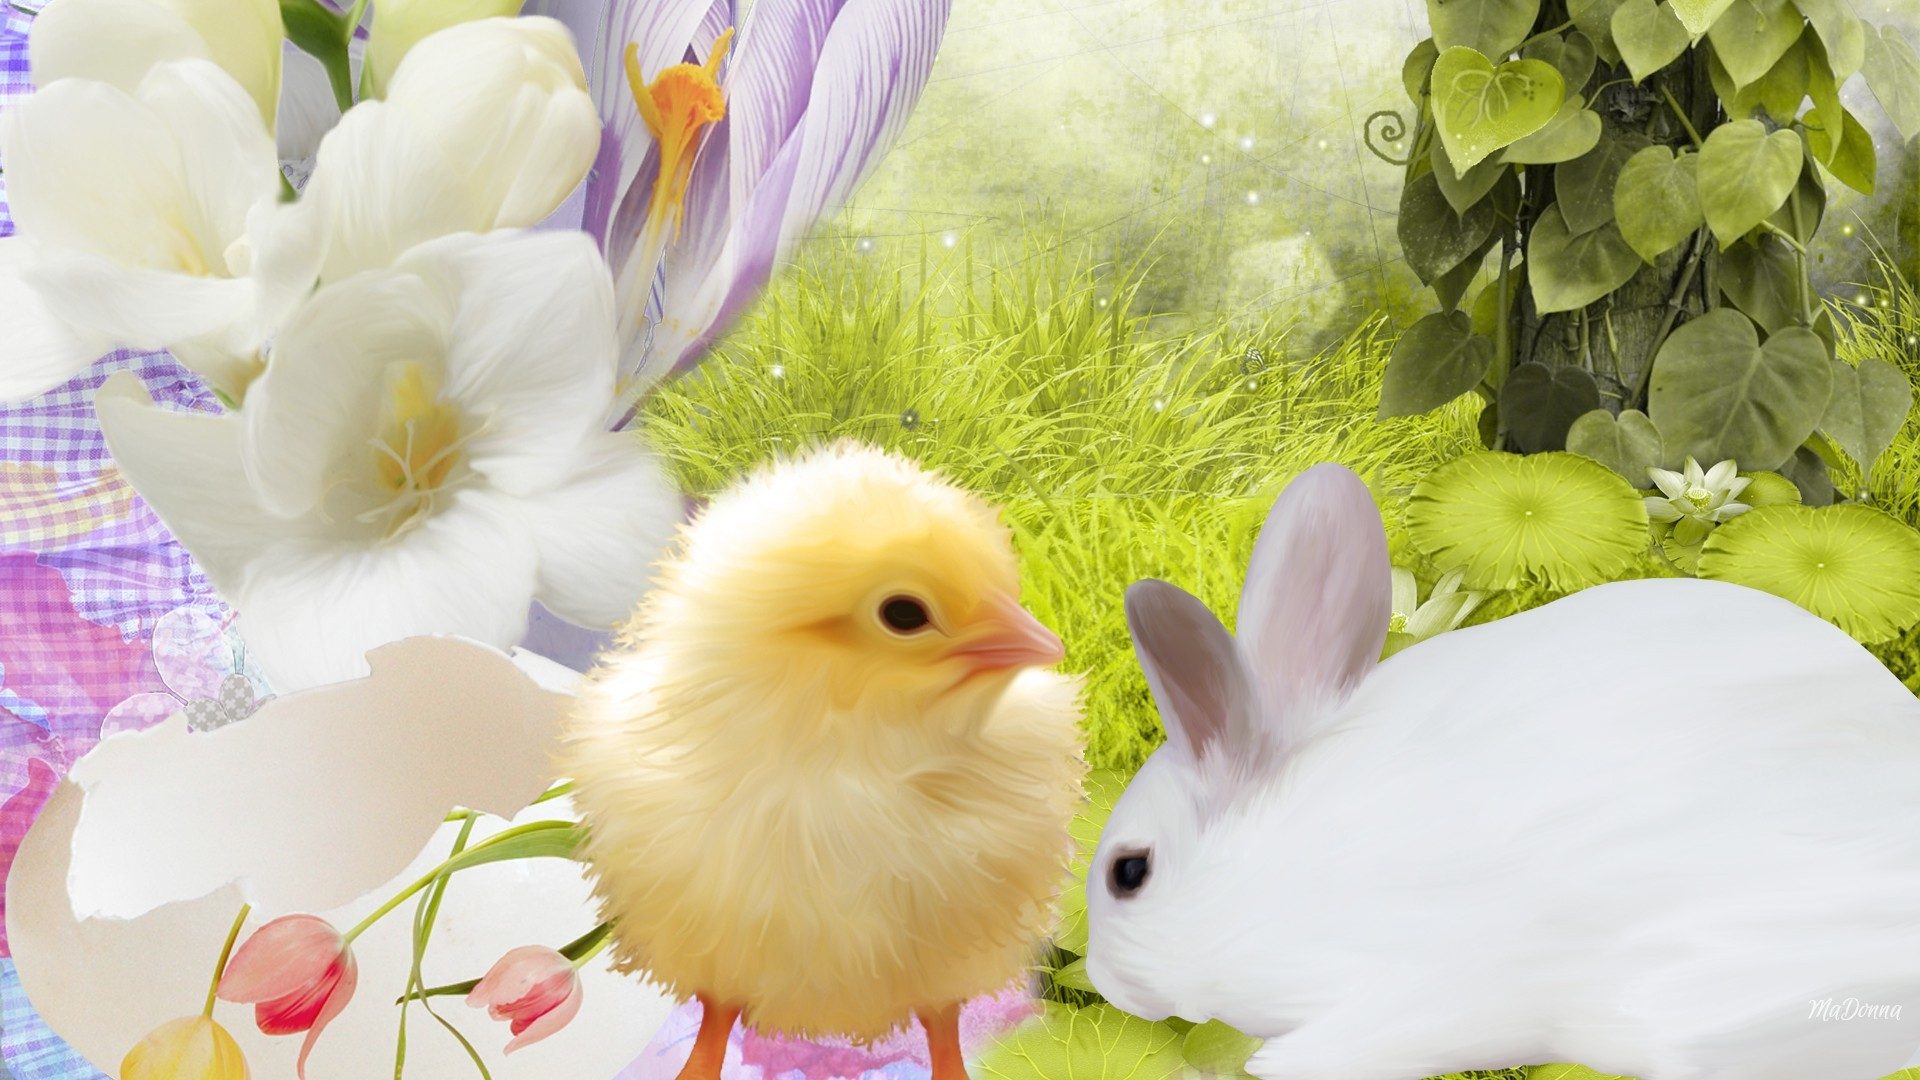 bunny_chick_easter_rabbit_chicken_grass_hd-wallpapers